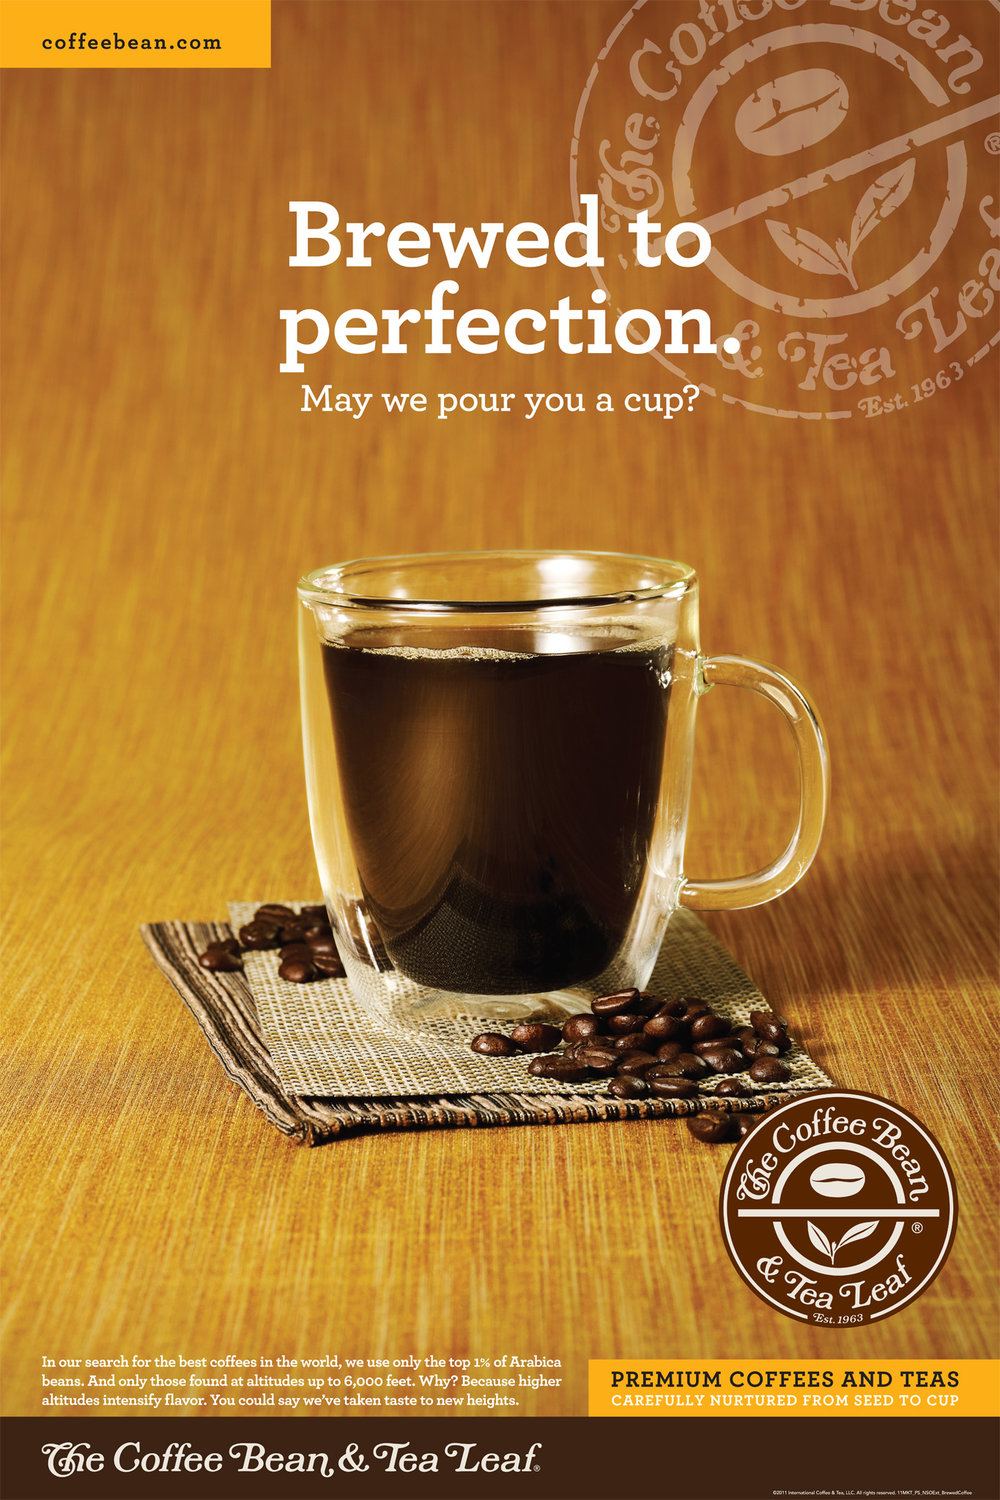 coffee bean and tea leaf fall brewed coffee in layout.jpg